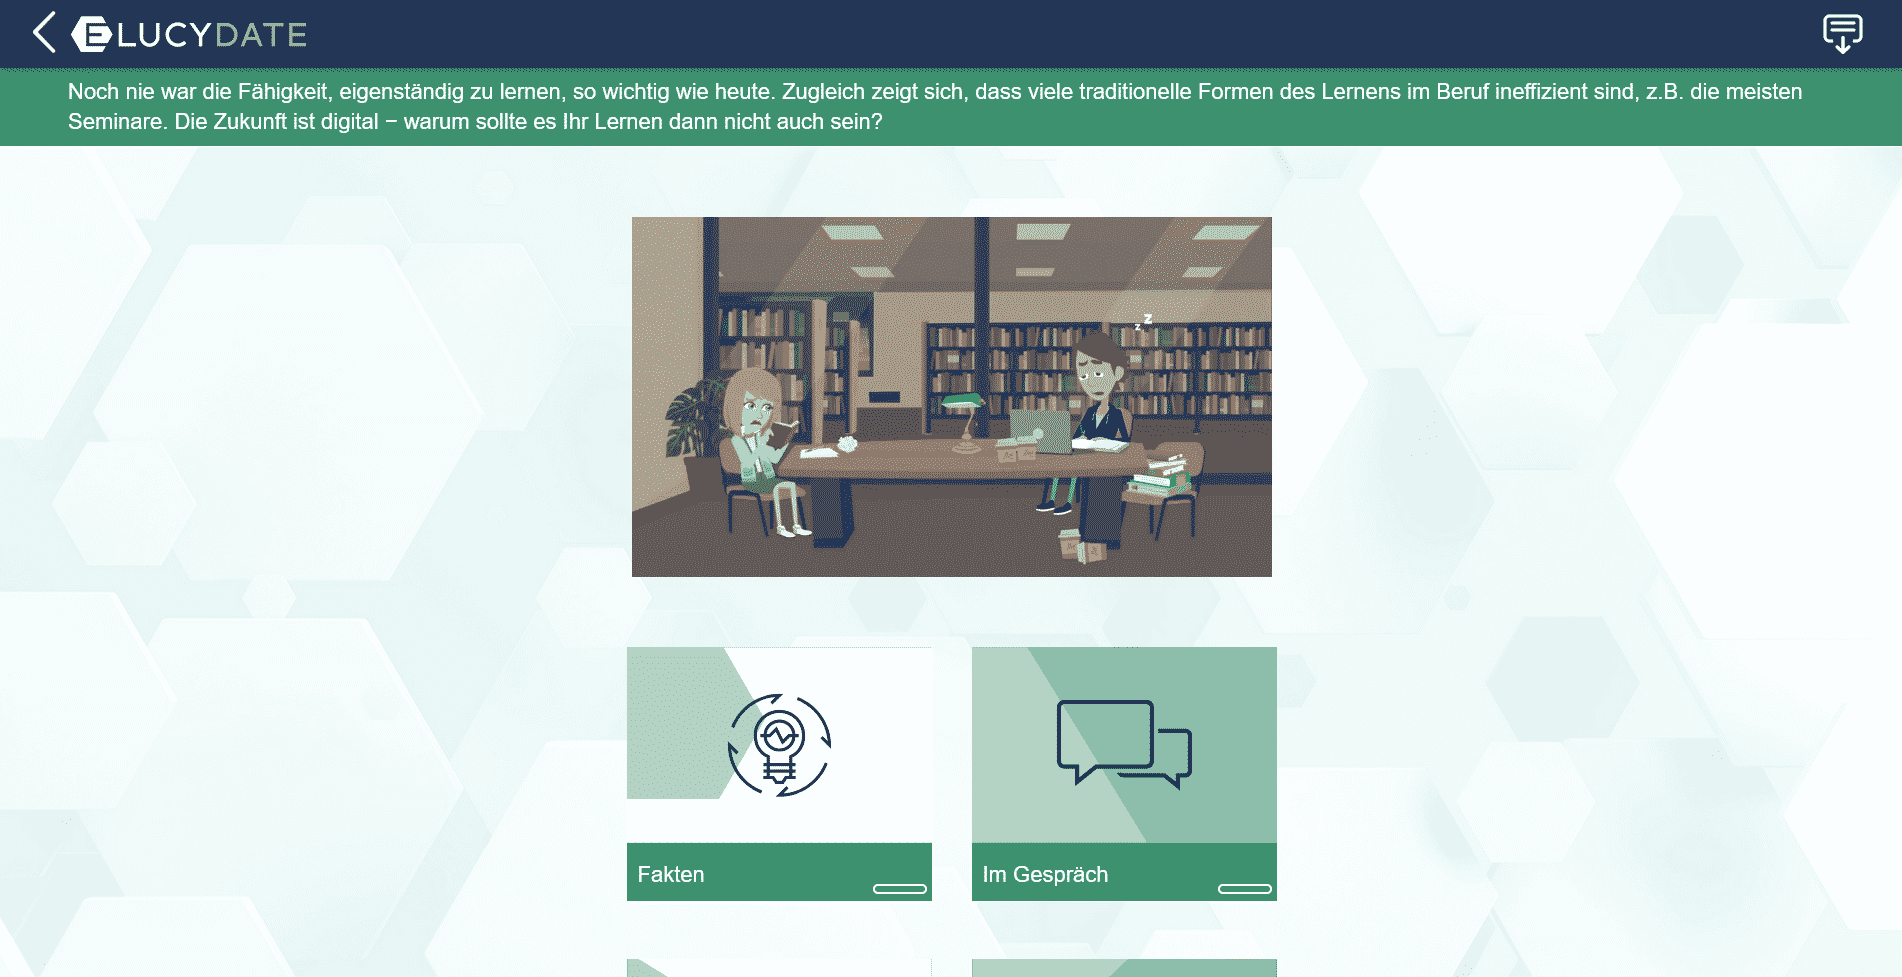 Screenshot E-Learning Elucydate Digitalisierung Kursaufbau